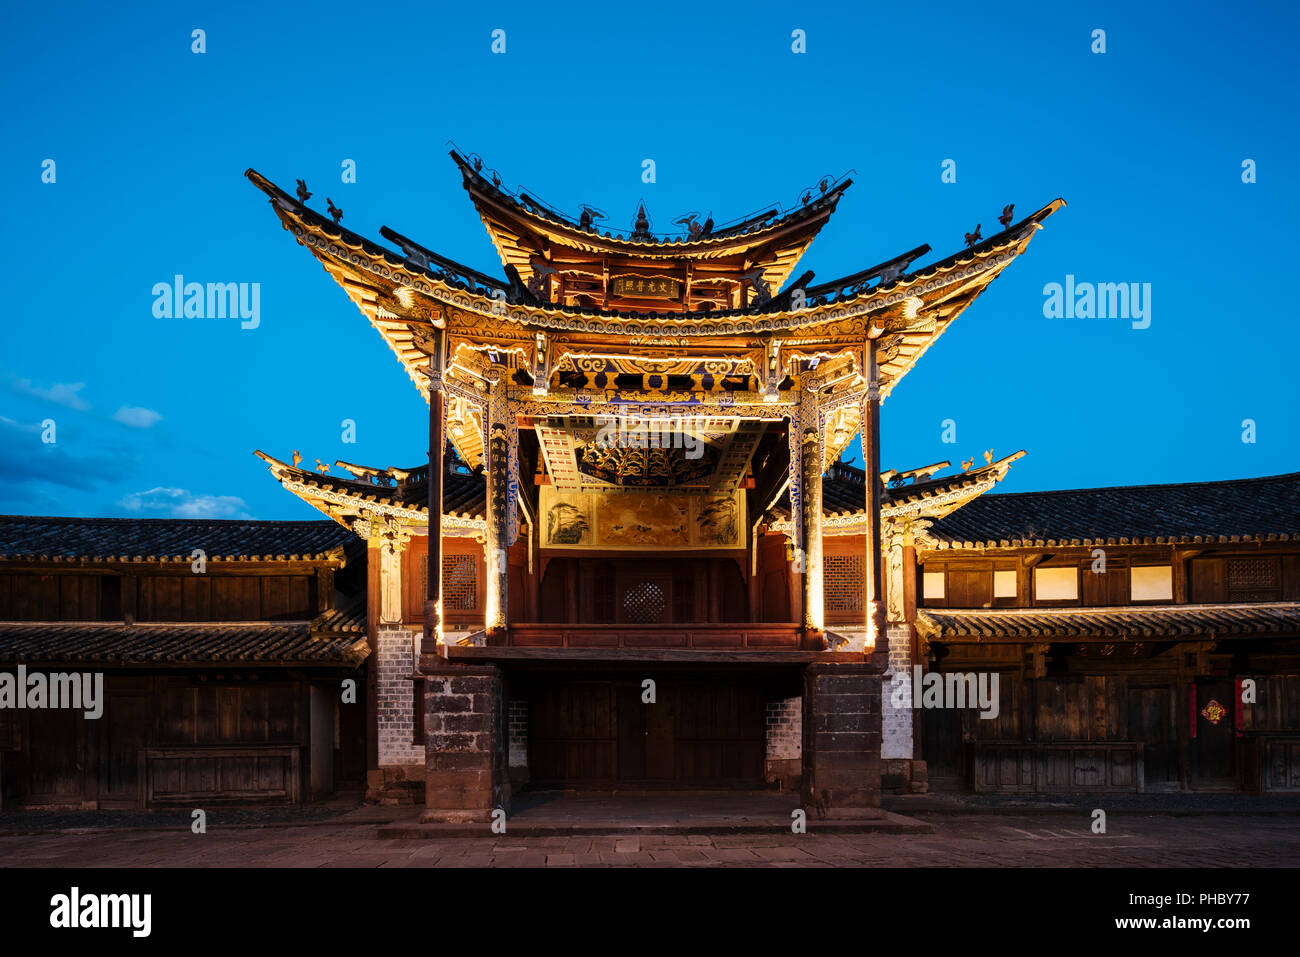 The Three Terraced Pavilion, Shaxi, Yunnan Province, China, Asia Stock Photo